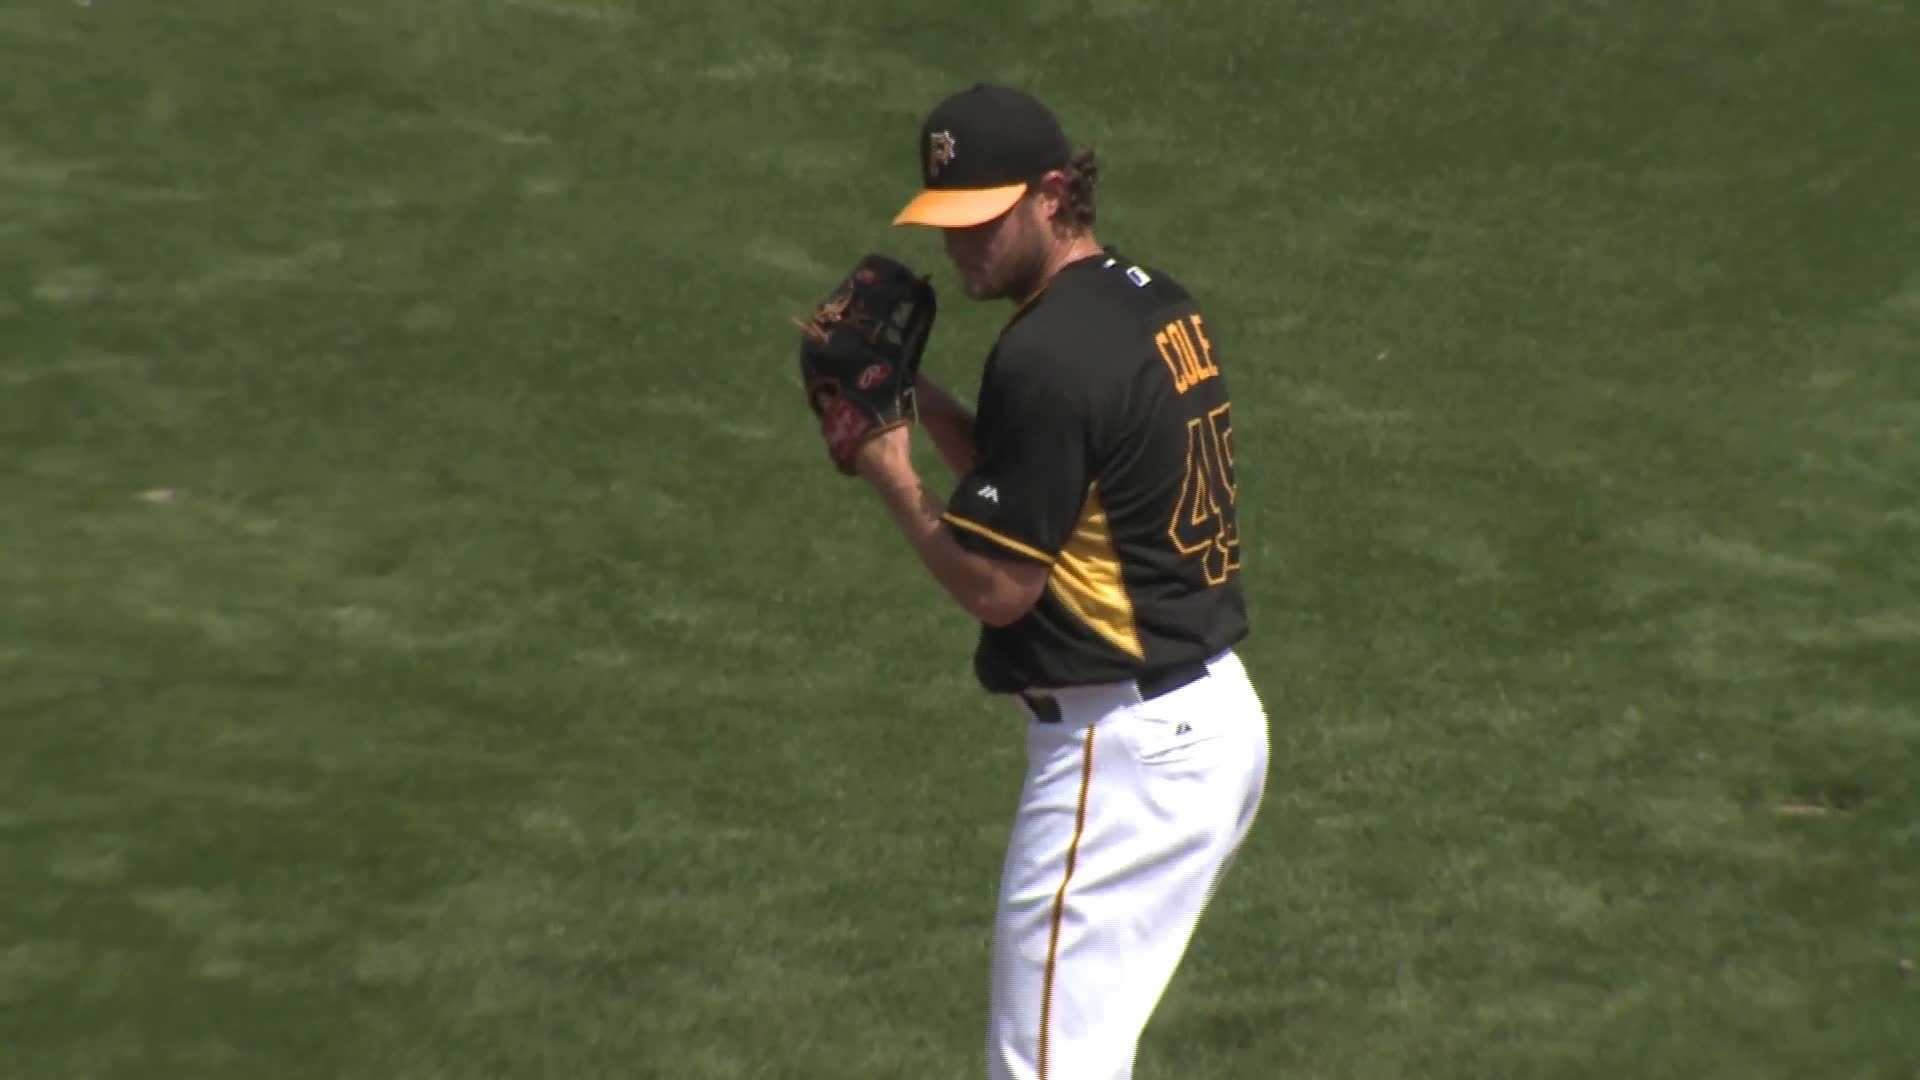 Pirates pitcher Gerrit Cole at spring training in Bradenton facing the MInnesota Twins